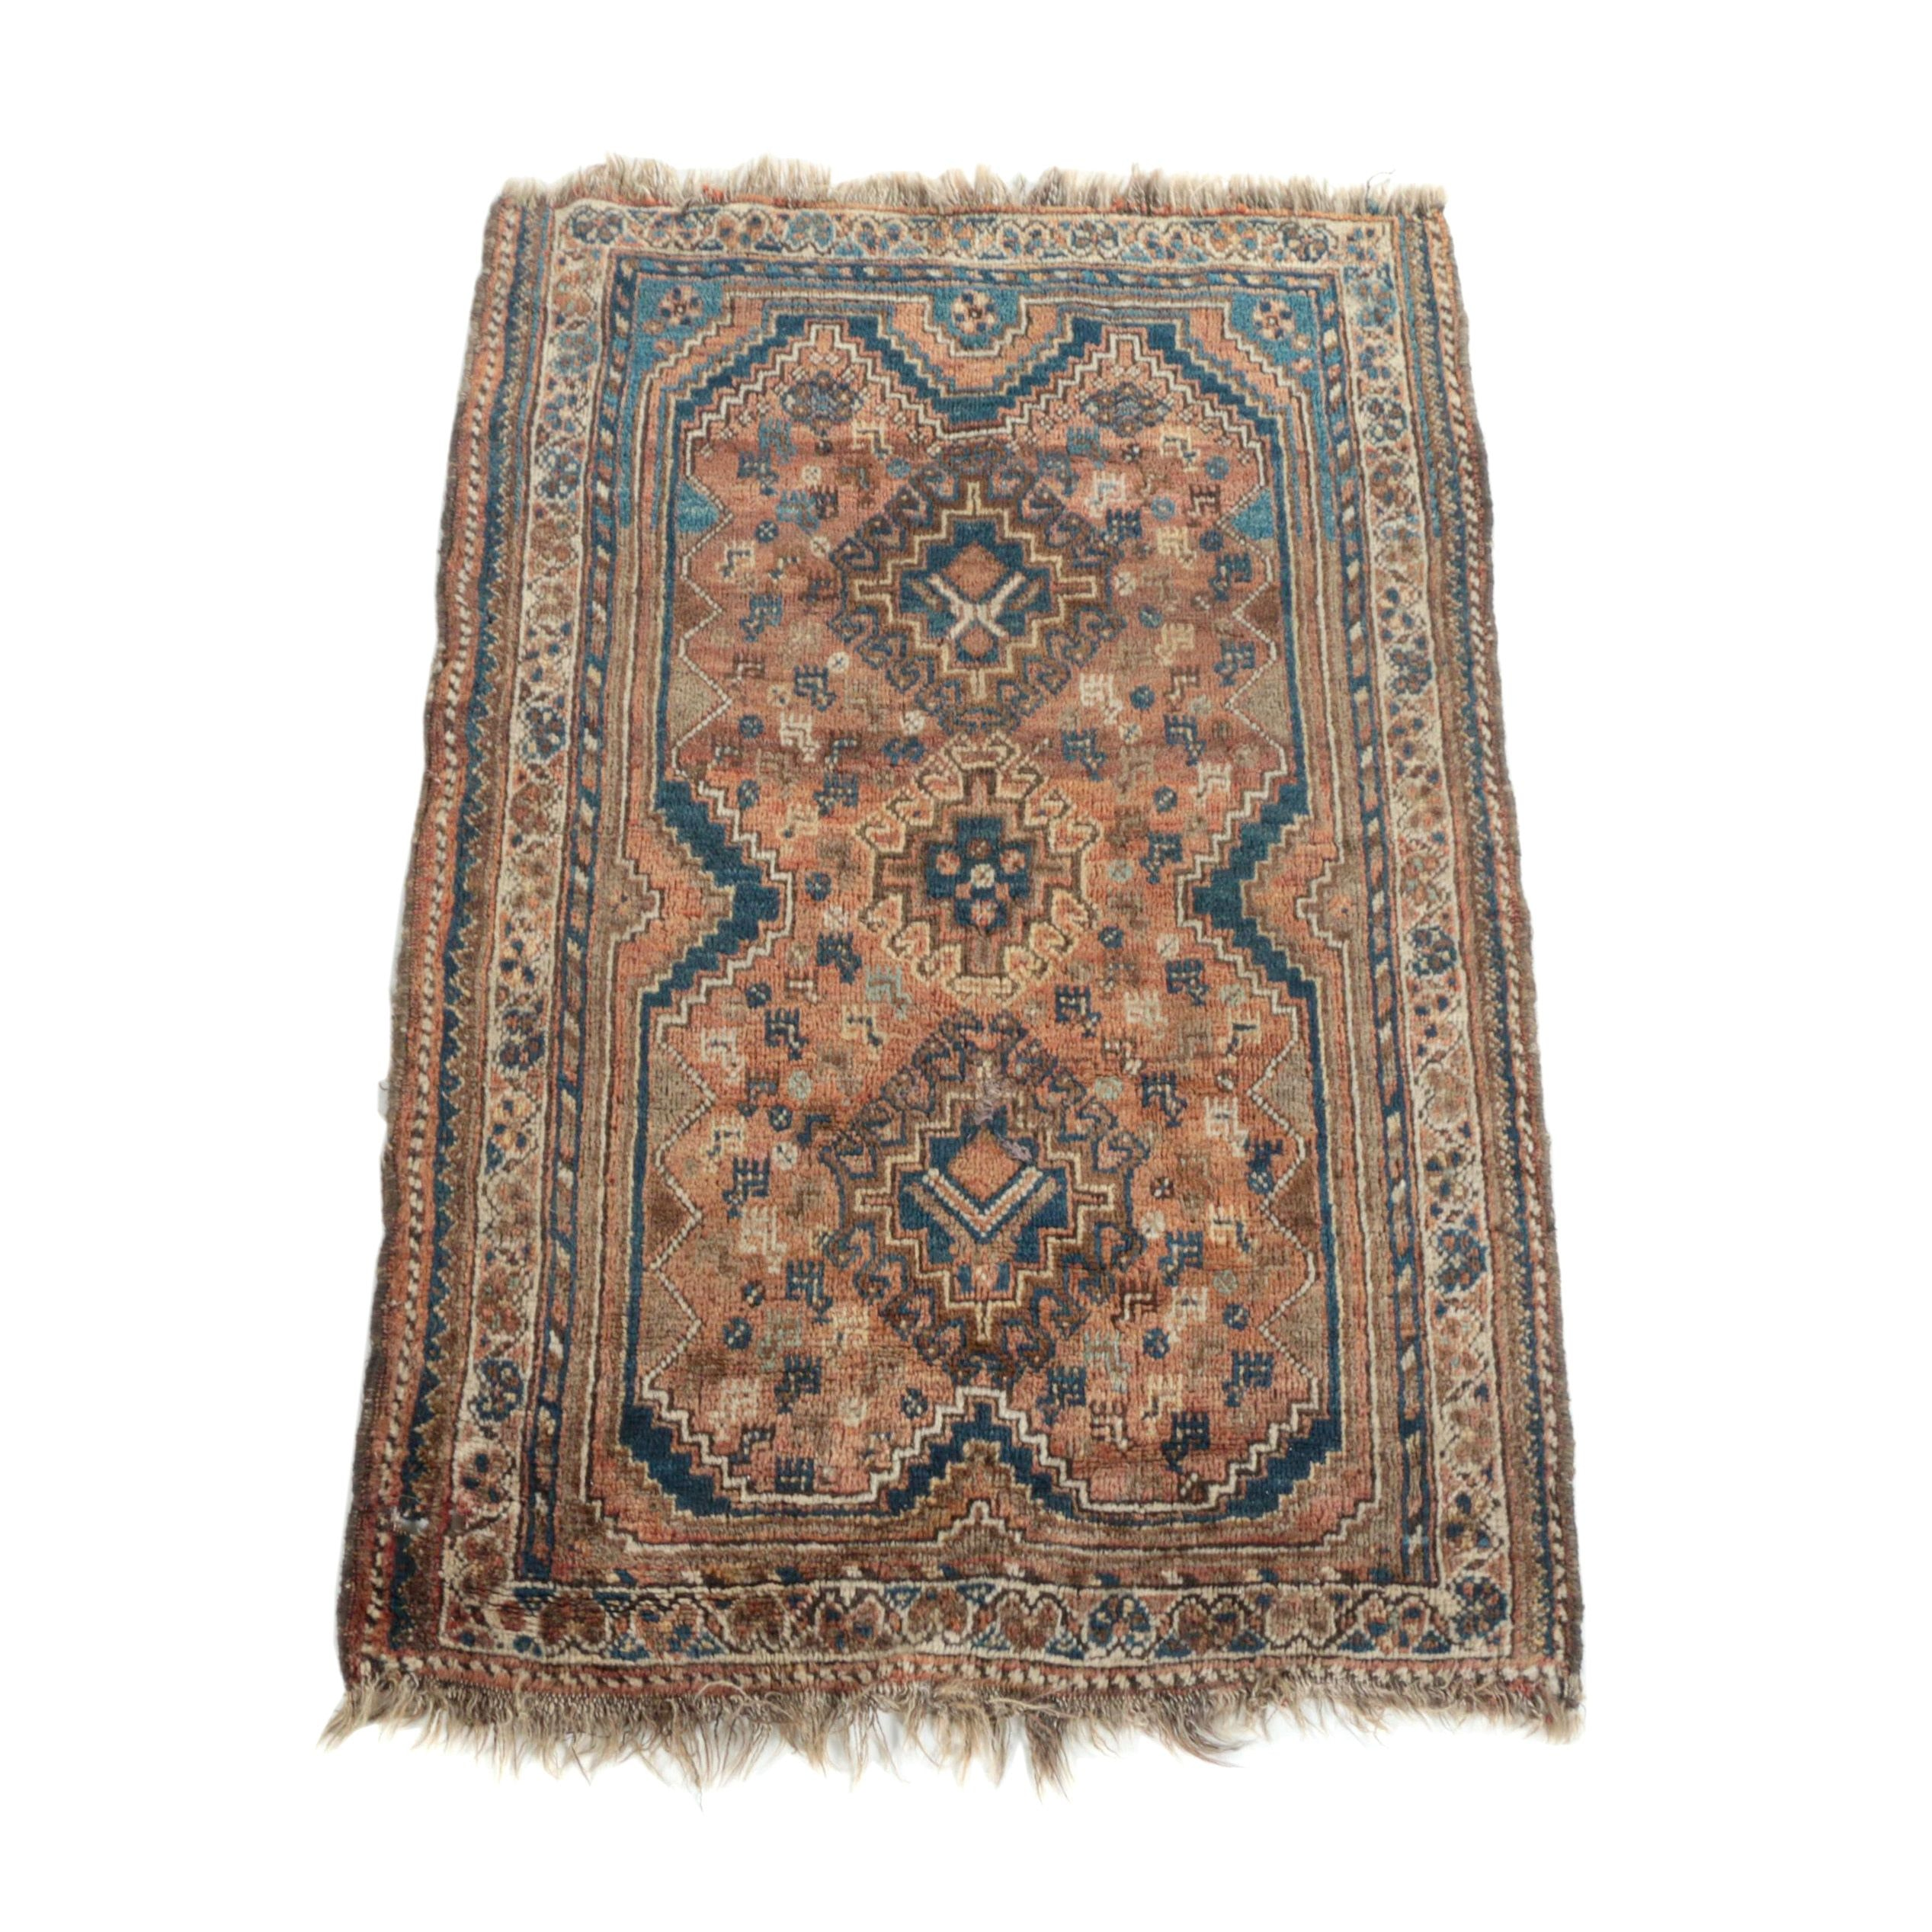 Antique Hand-Knotted Persian Tribal Accent Rug